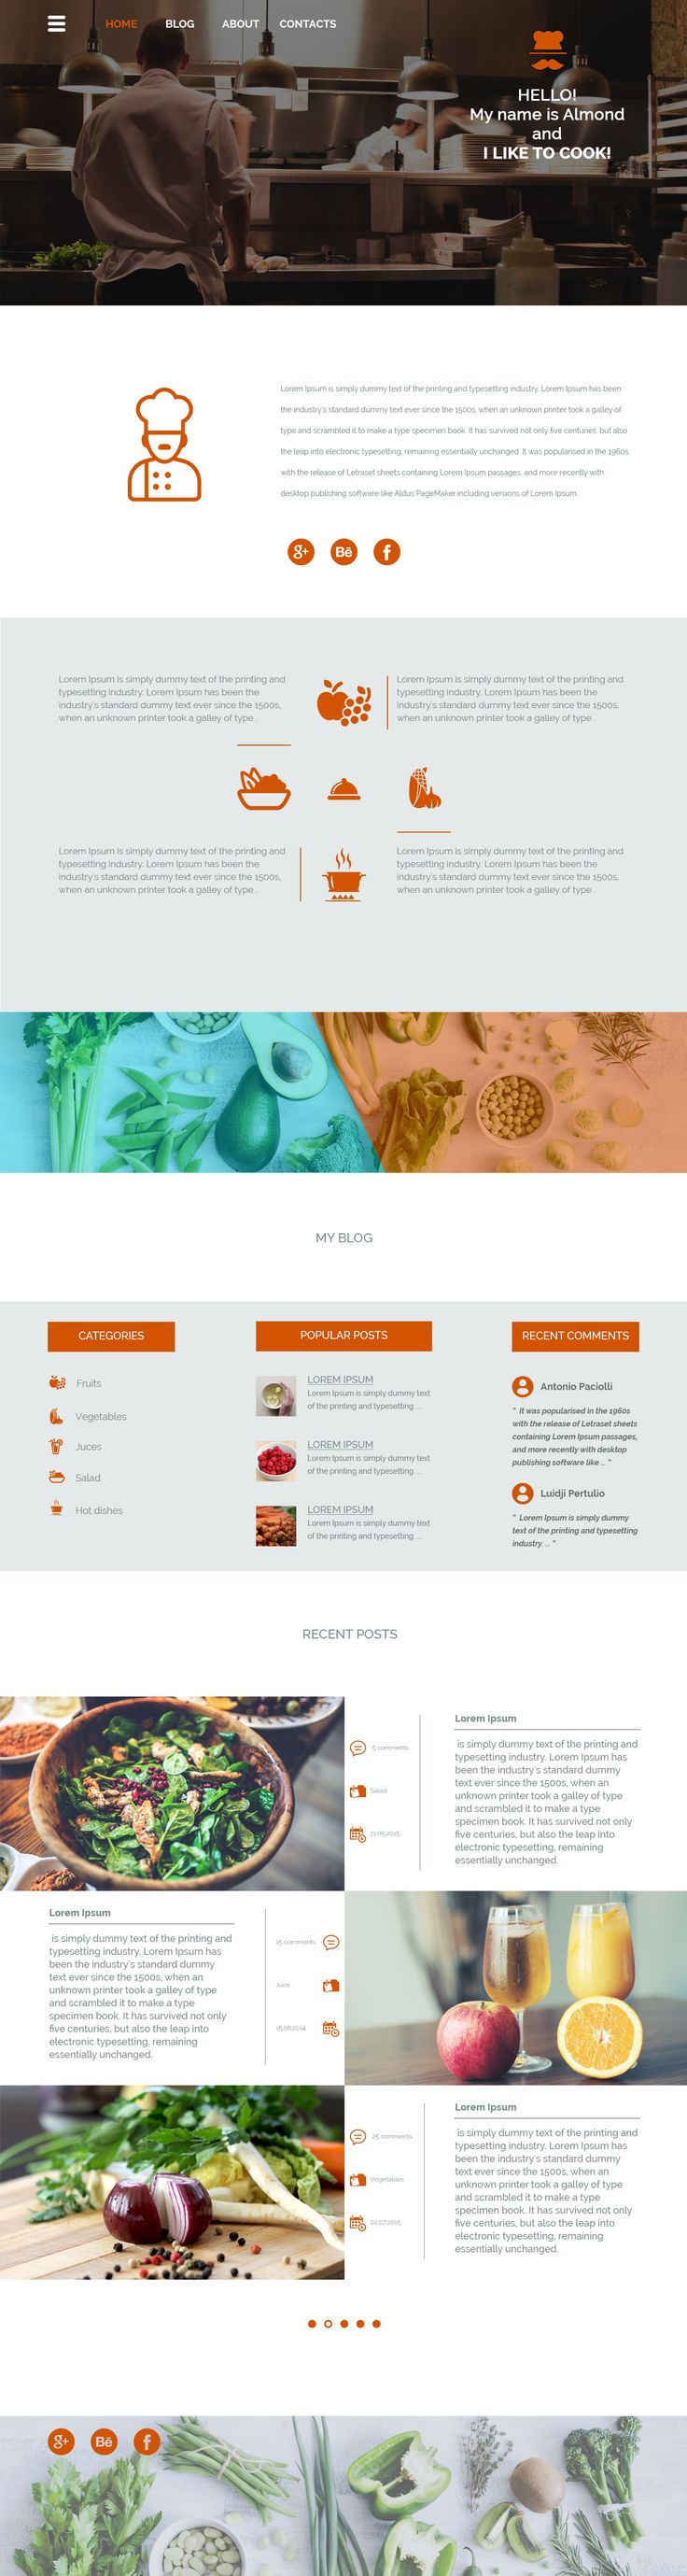 Blog About Cooking by LD on Creative Market